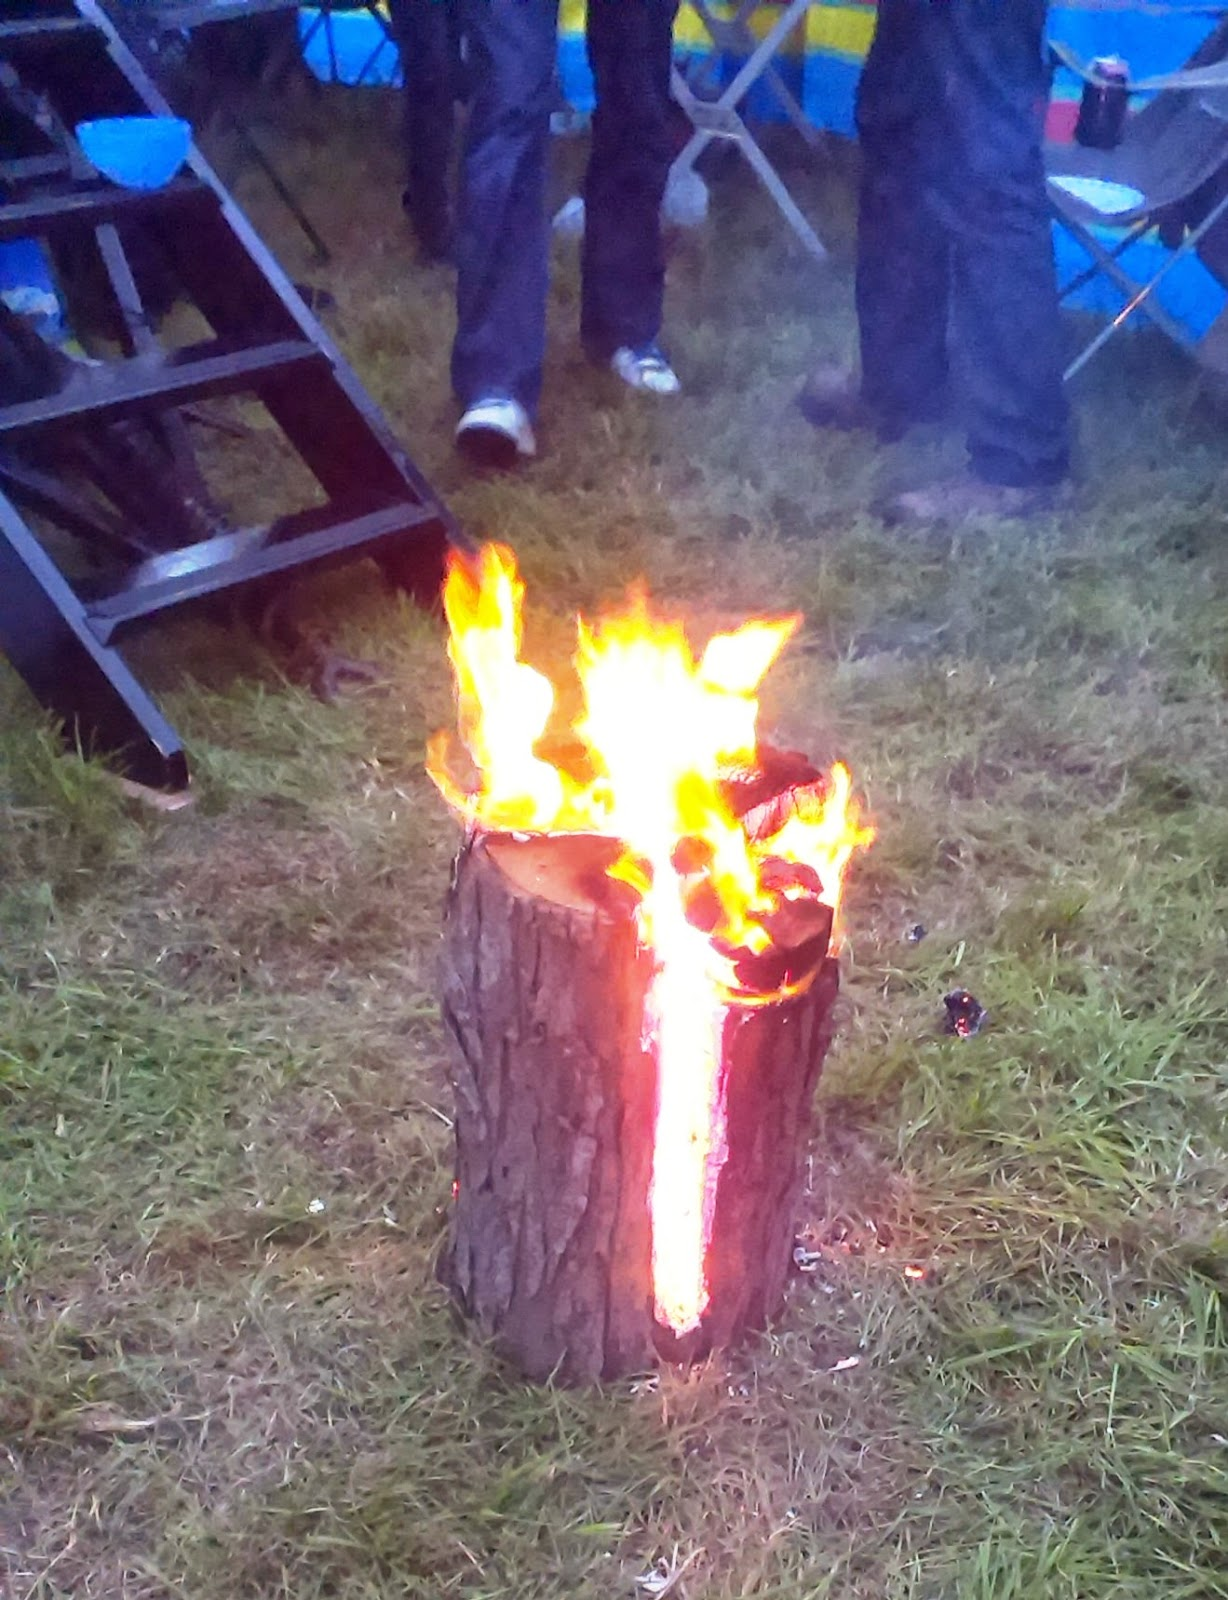 Fire in a log